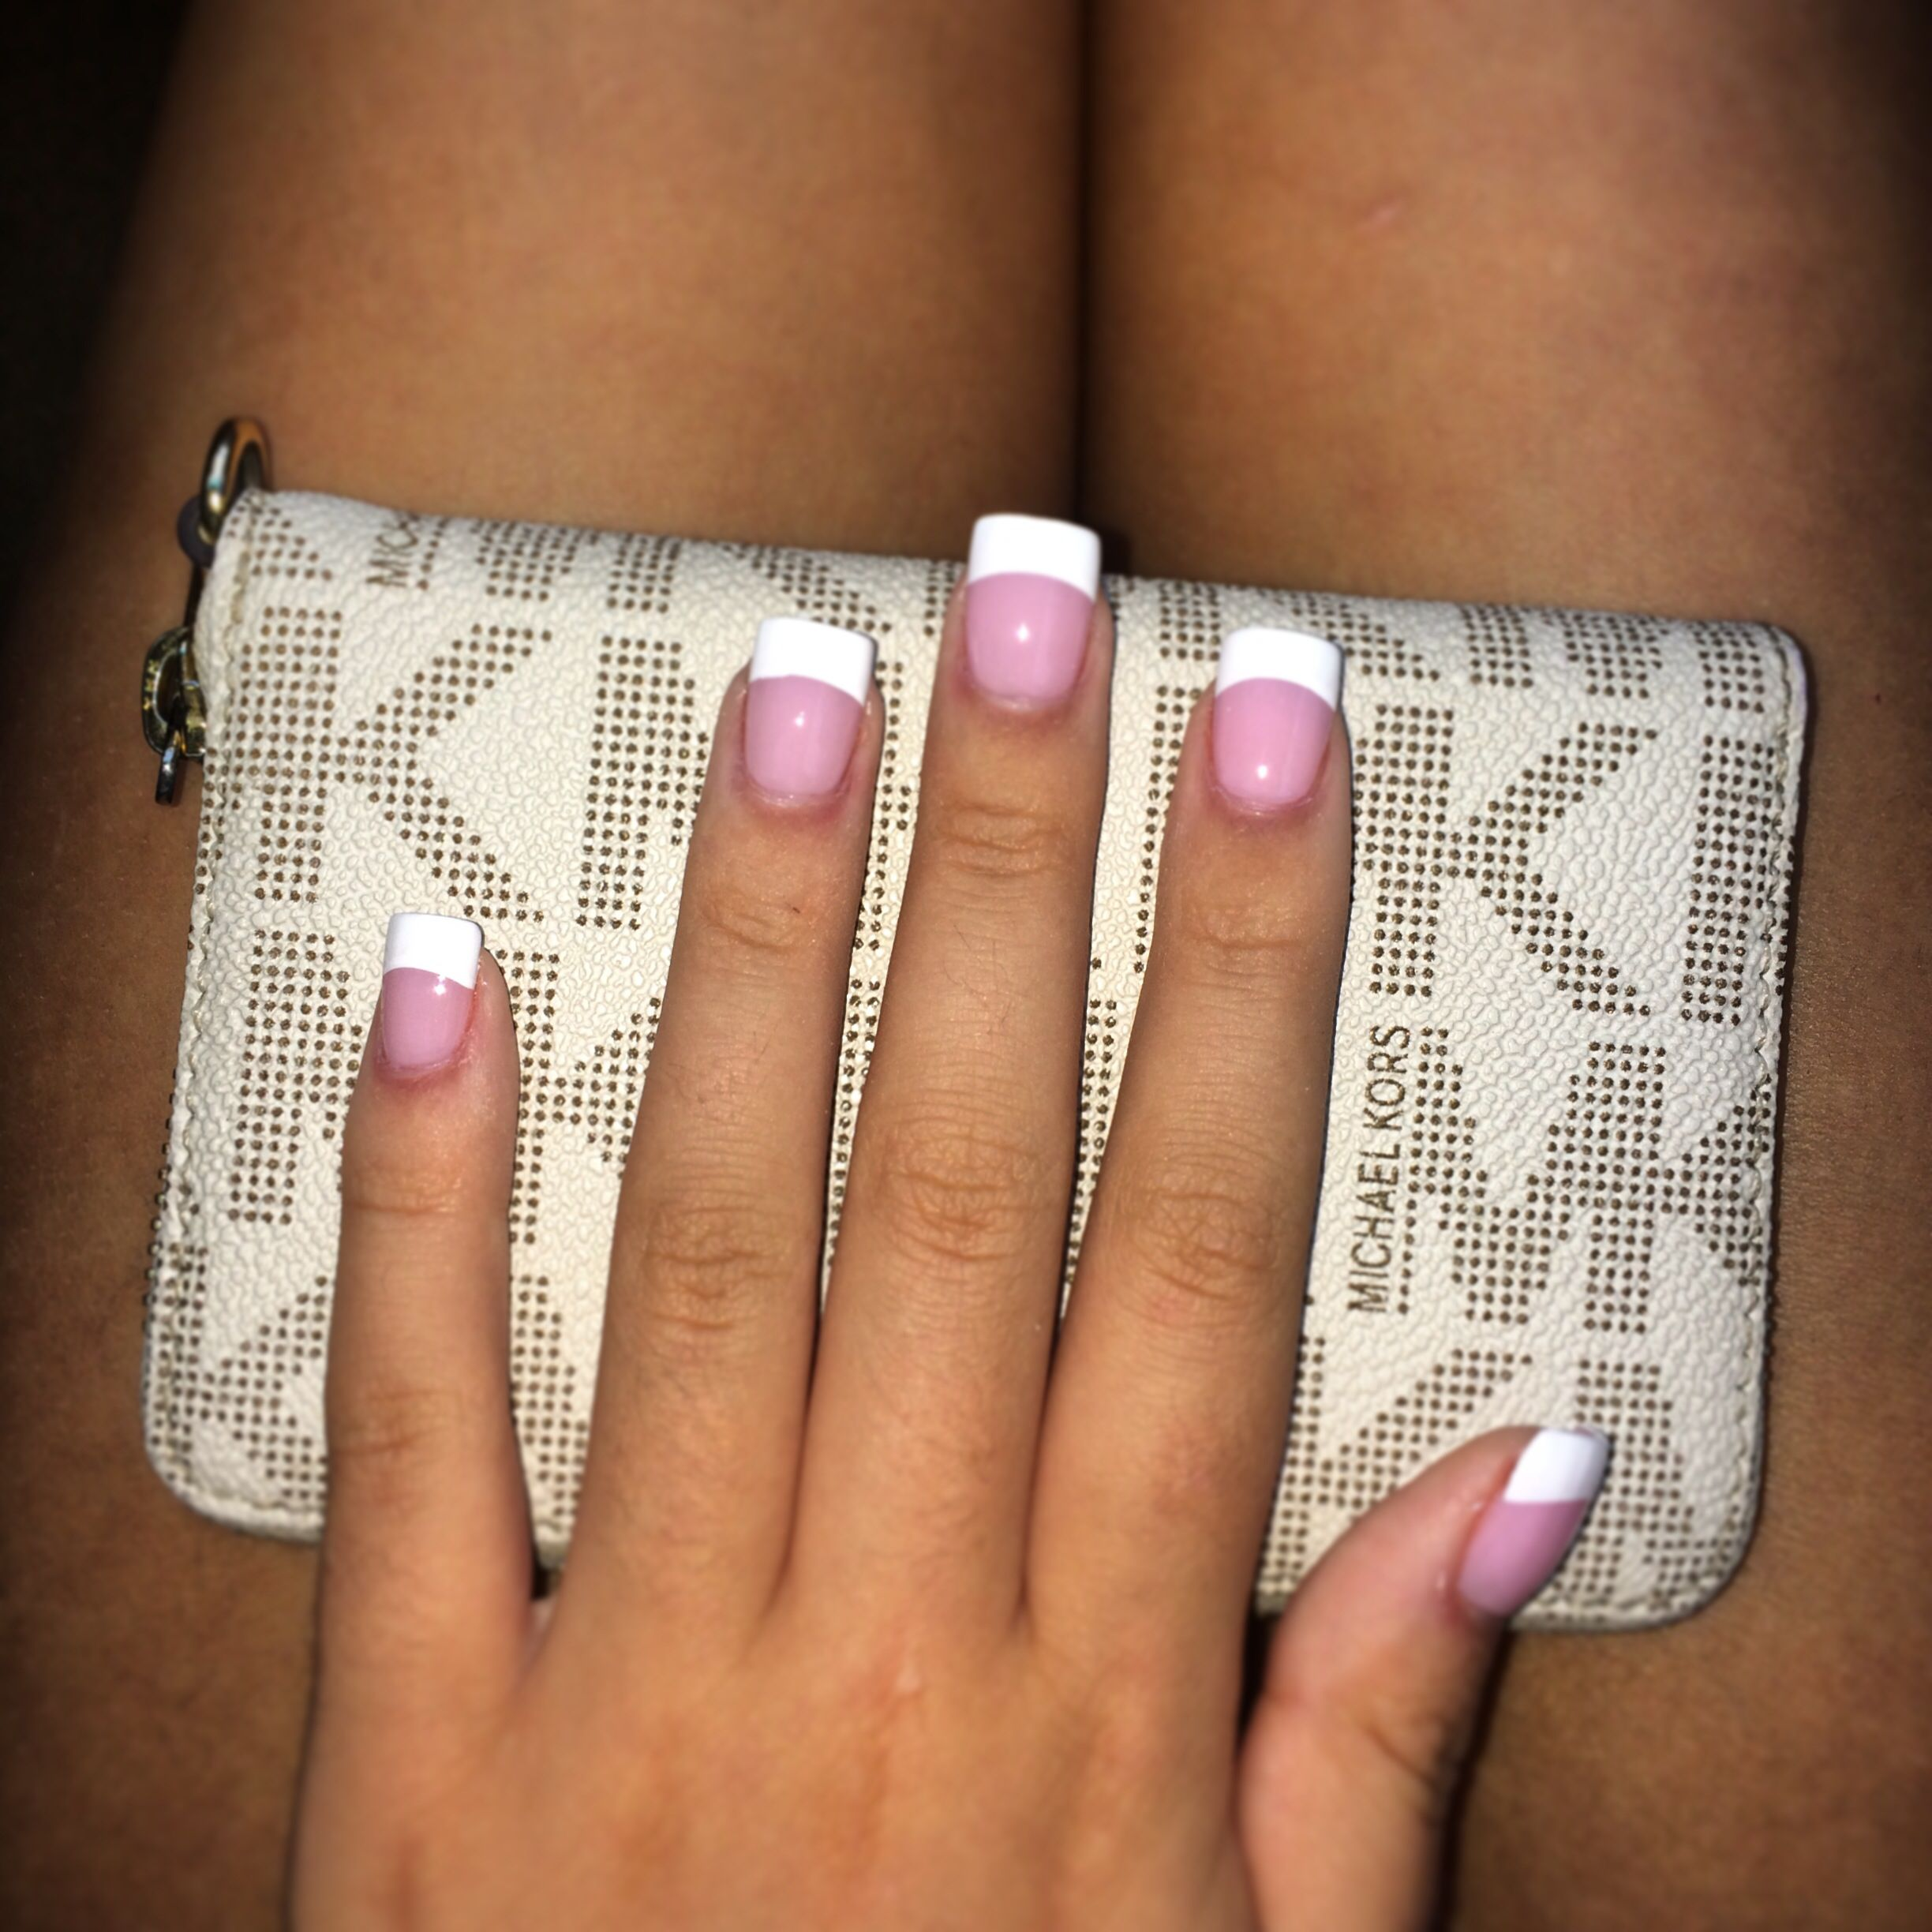 Pink and white acrylic nails | Nails | Pinterest | White acrylic ...